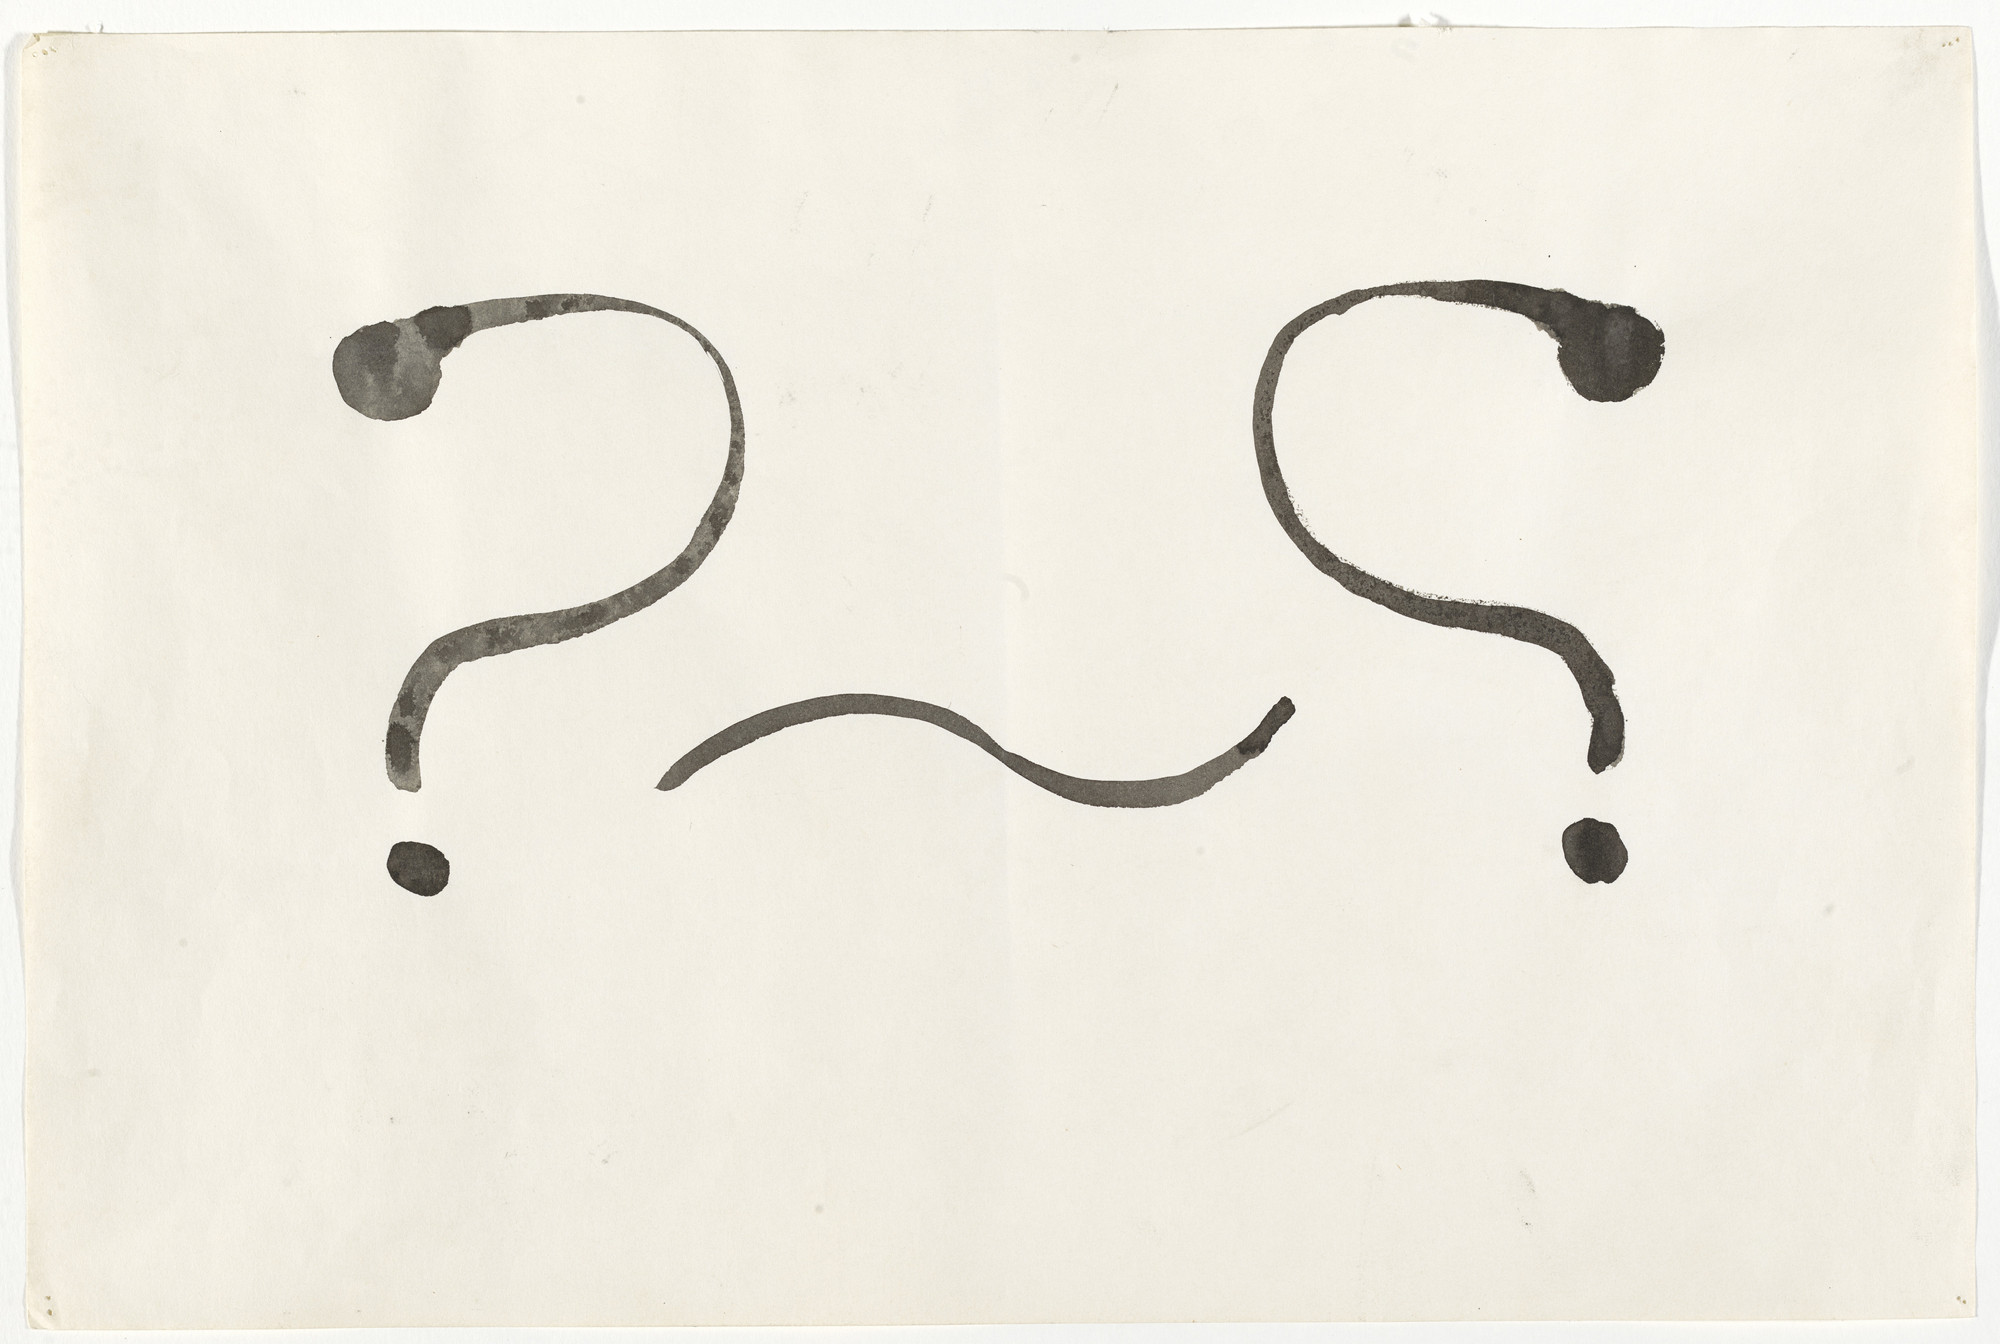 Mike Kelley. The Two of Symmetry. 1981